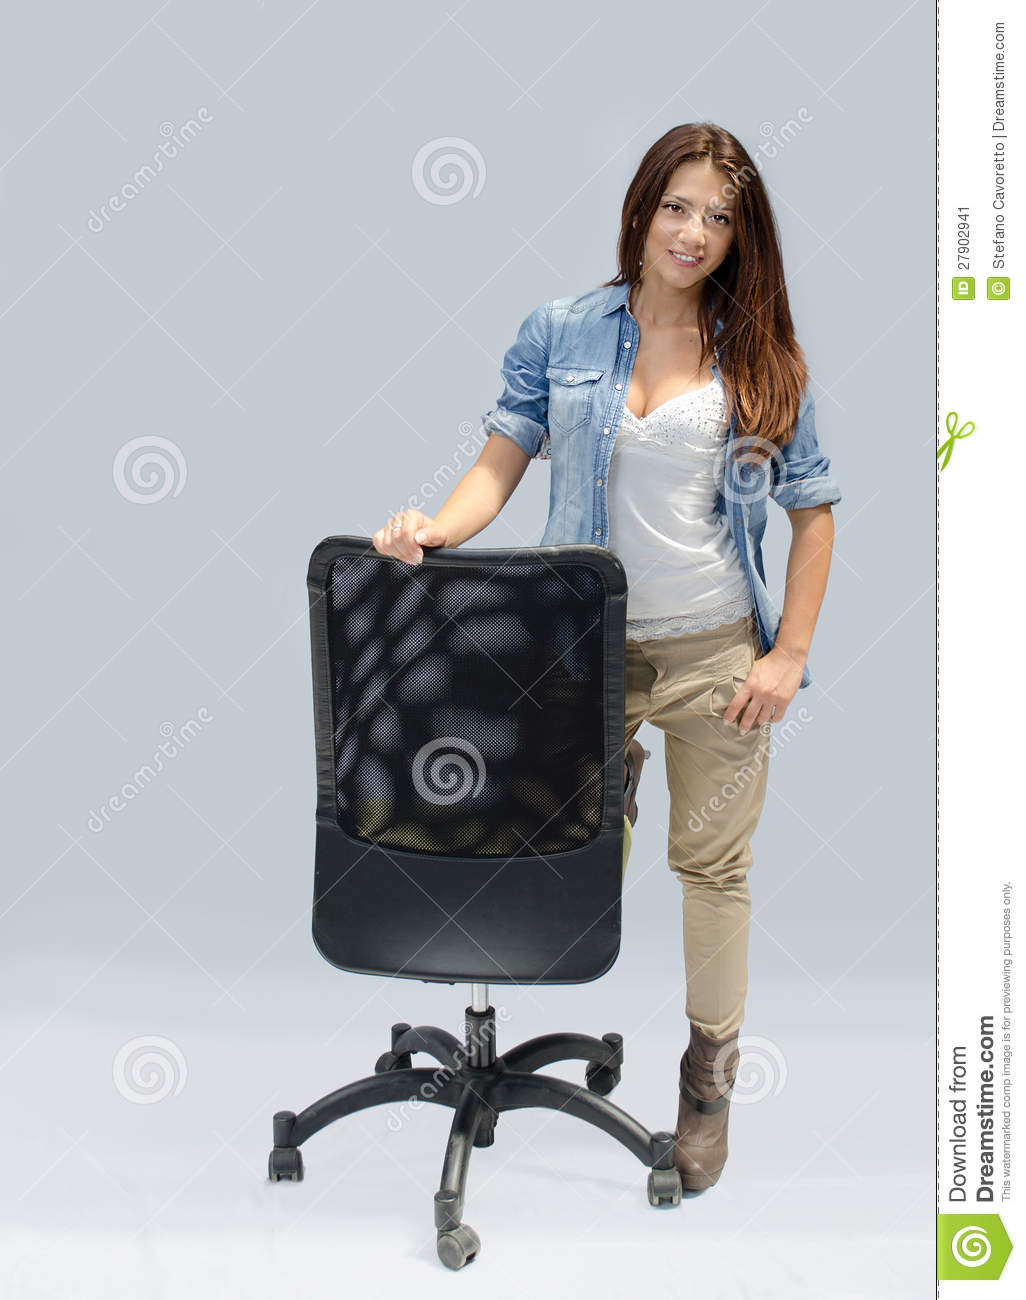 Girls Office Chair Pretty Girl Standing Next To An Office Chair Stock Image